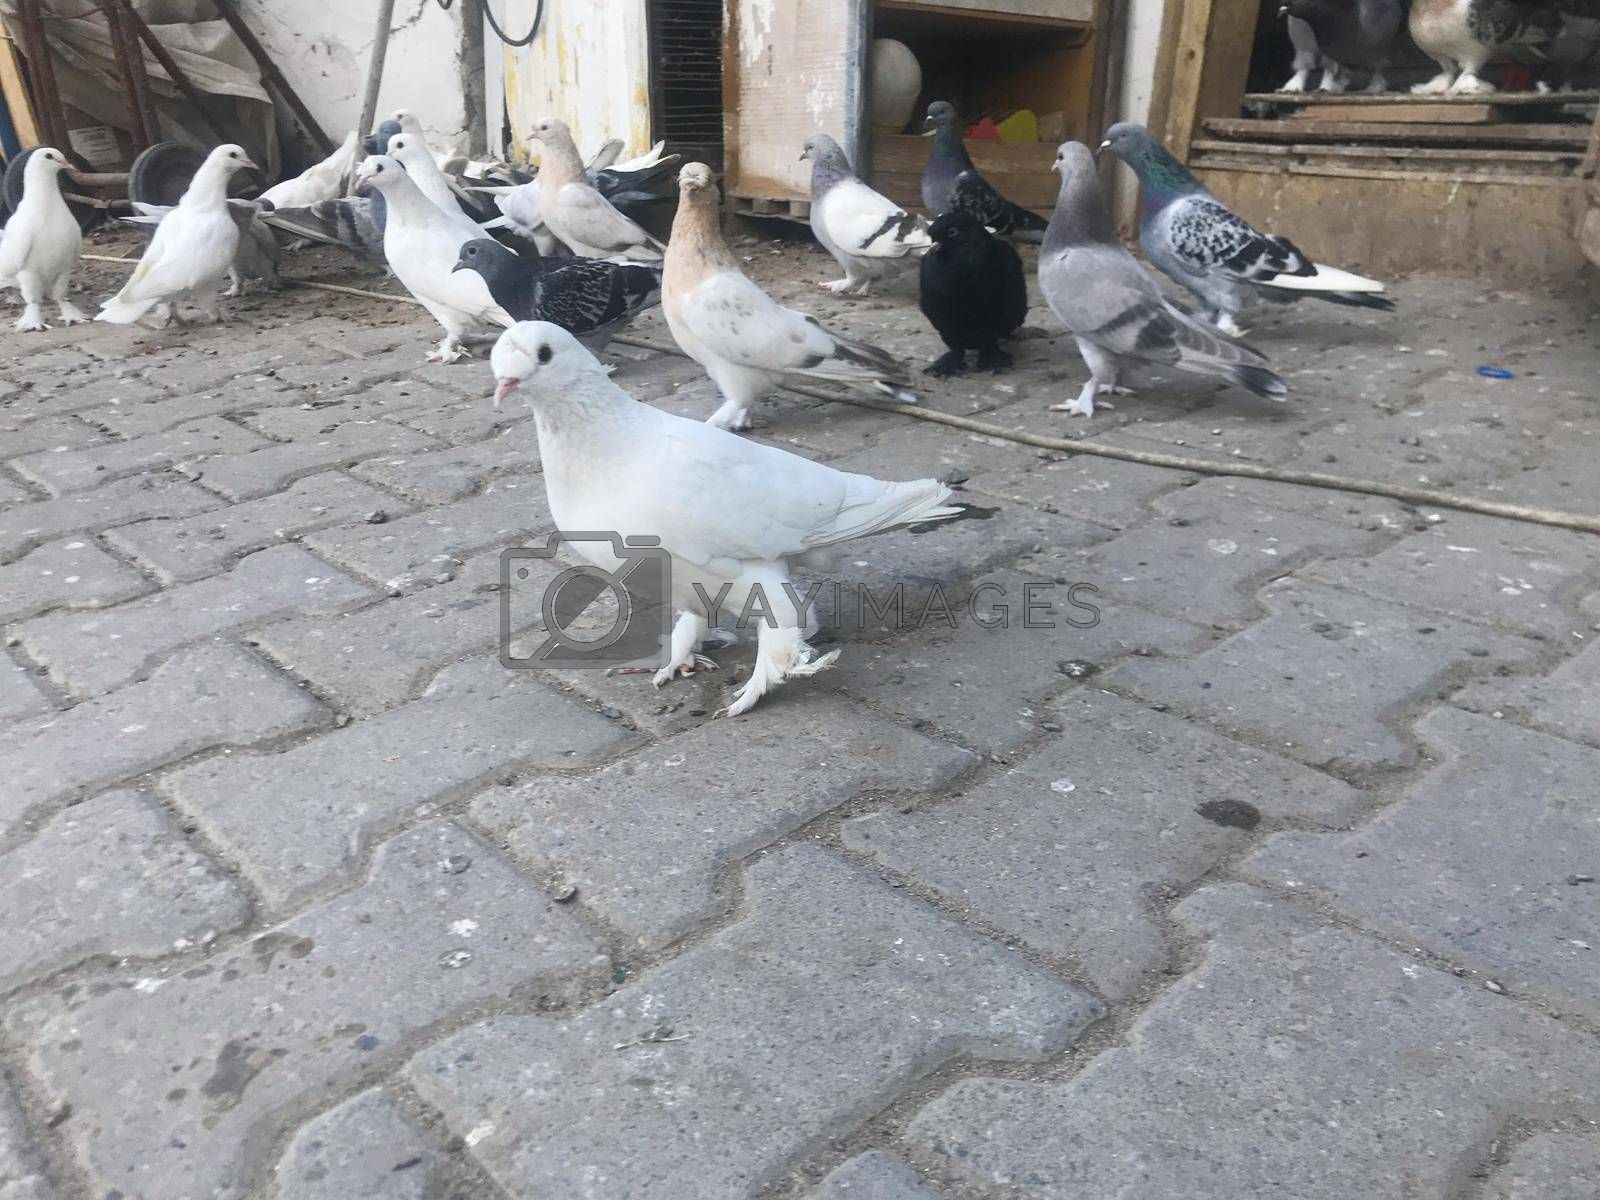 It depicts a lot of pigeons walking around and eating